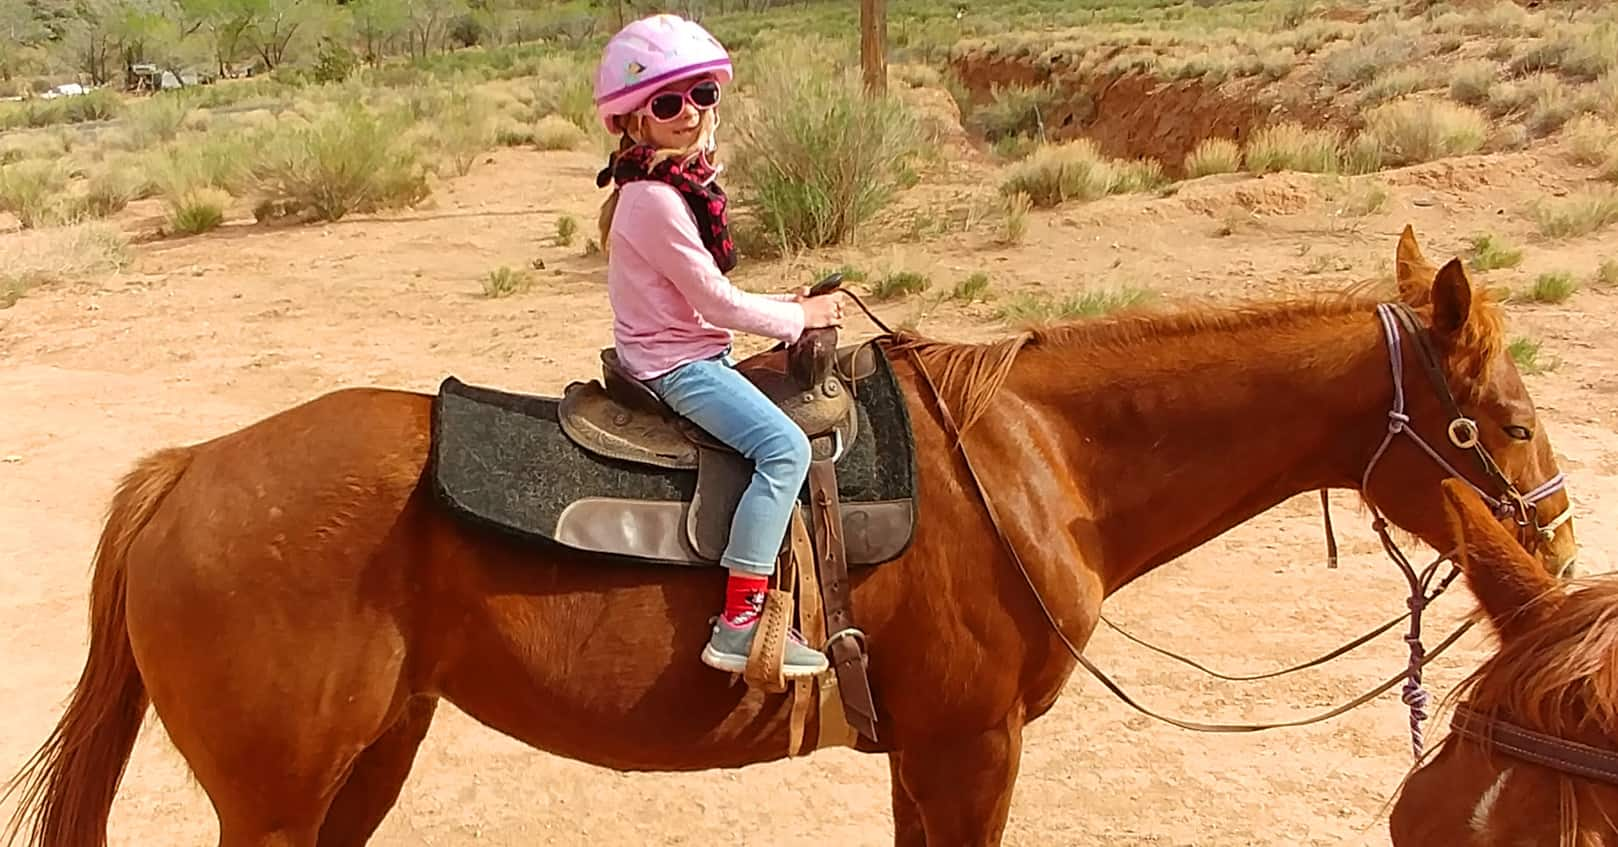 Taking children horseback riding